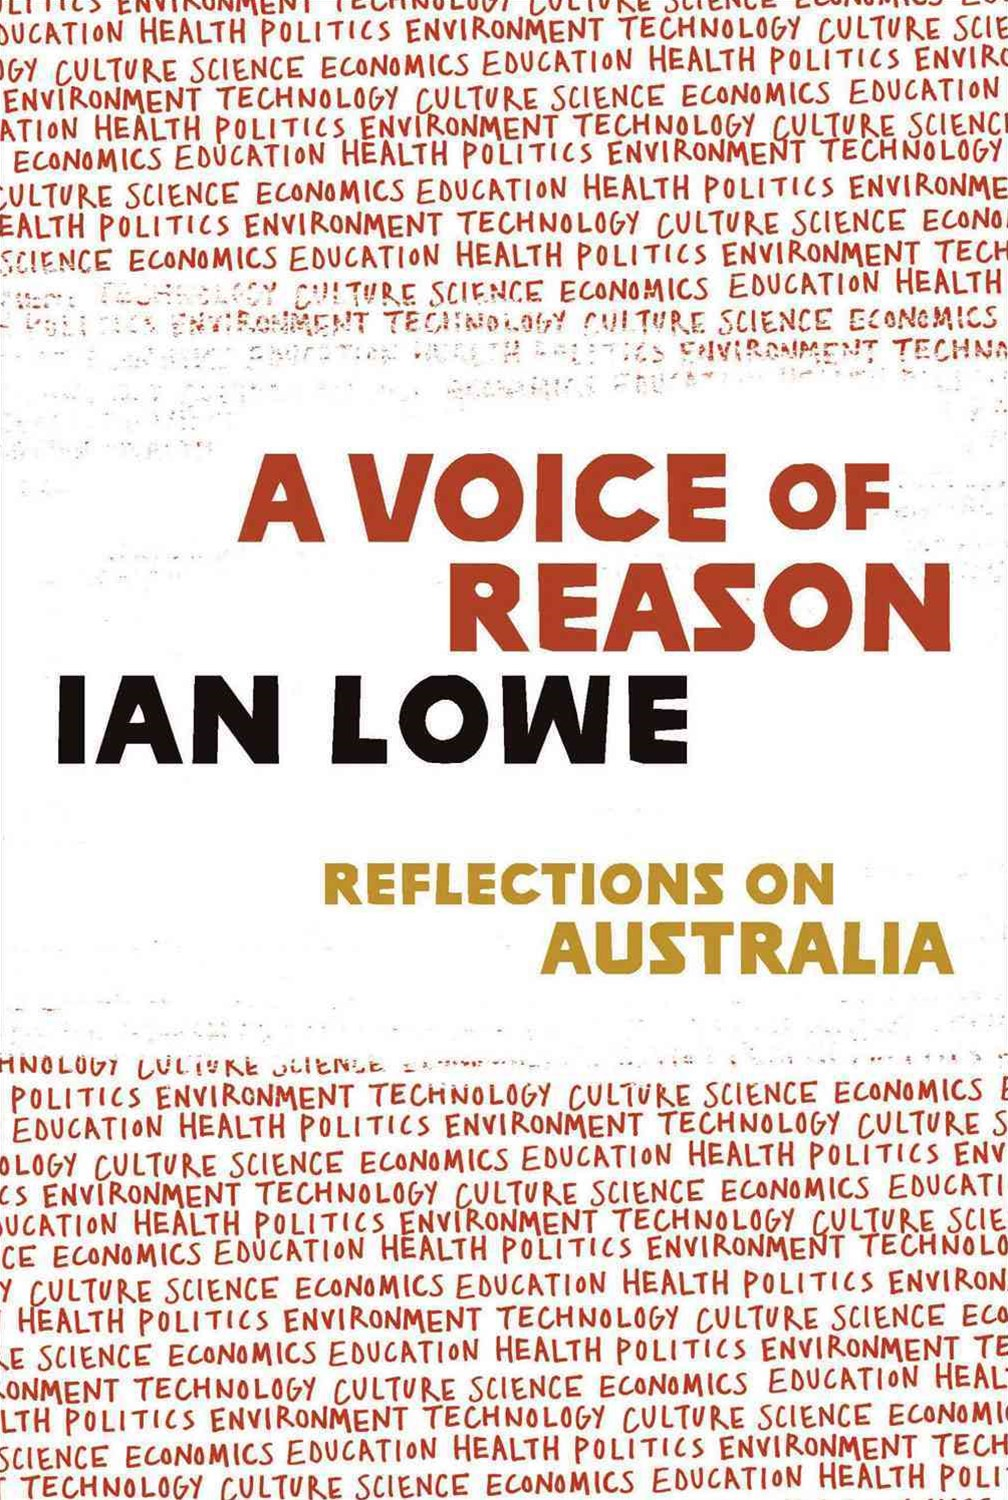 A Voice of Reason: Reflections on Australia